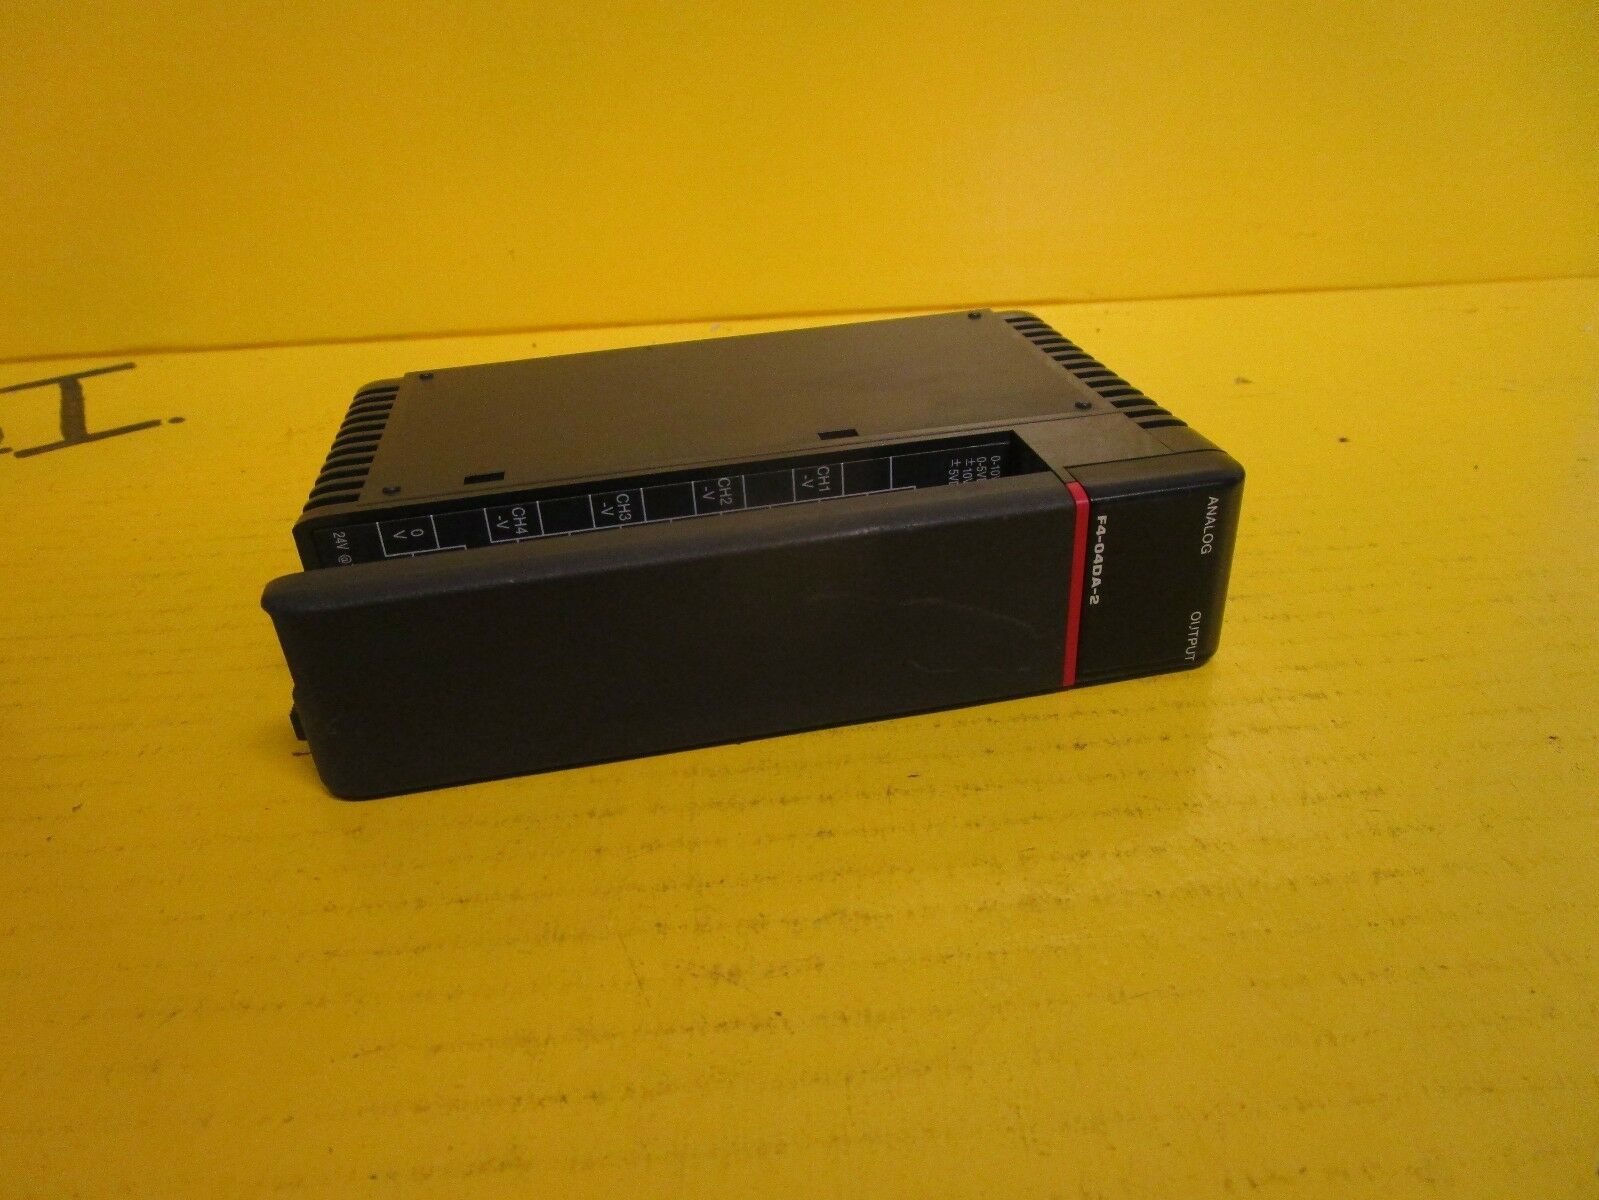 FACTS ENGINEERING 4-CHANNEL OUTPUT MODULE 0-5VDC 0-10VDC F4-04DA-2 on